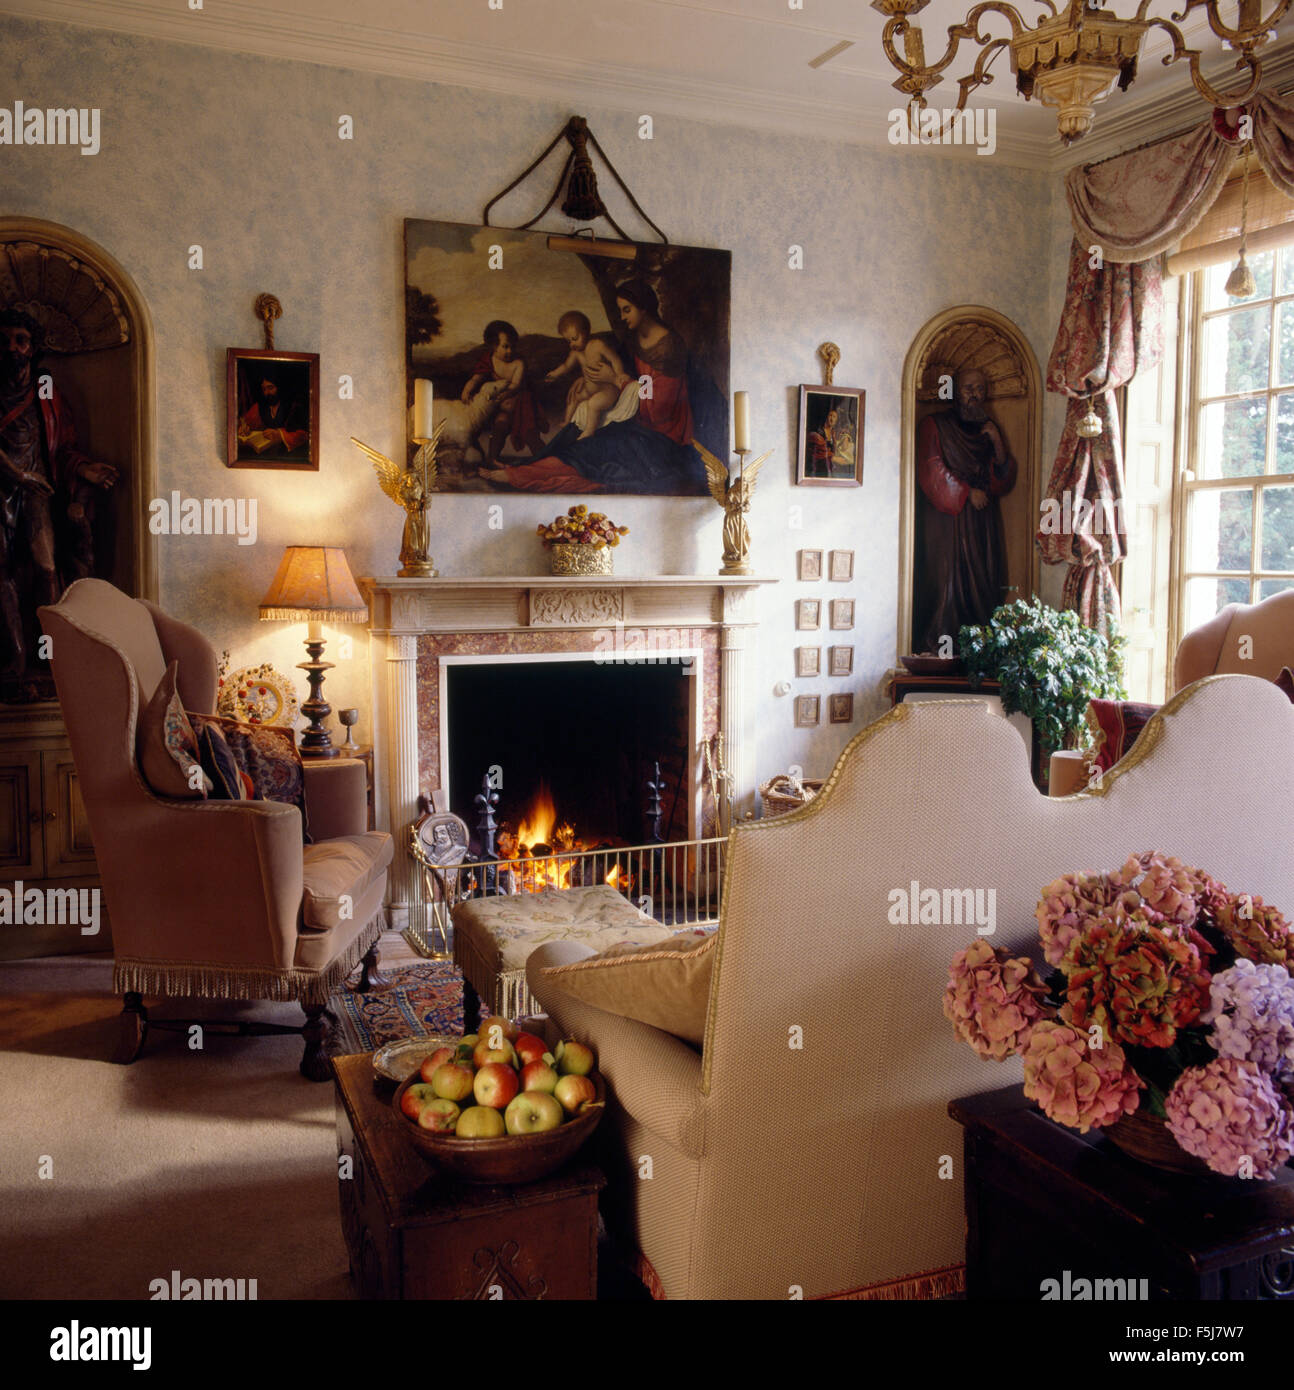 Painting Above Fireplace With Lighted Fire In Opulent Eighties Living Room  With A Wing Chair And A Cream Camel Back Sofa